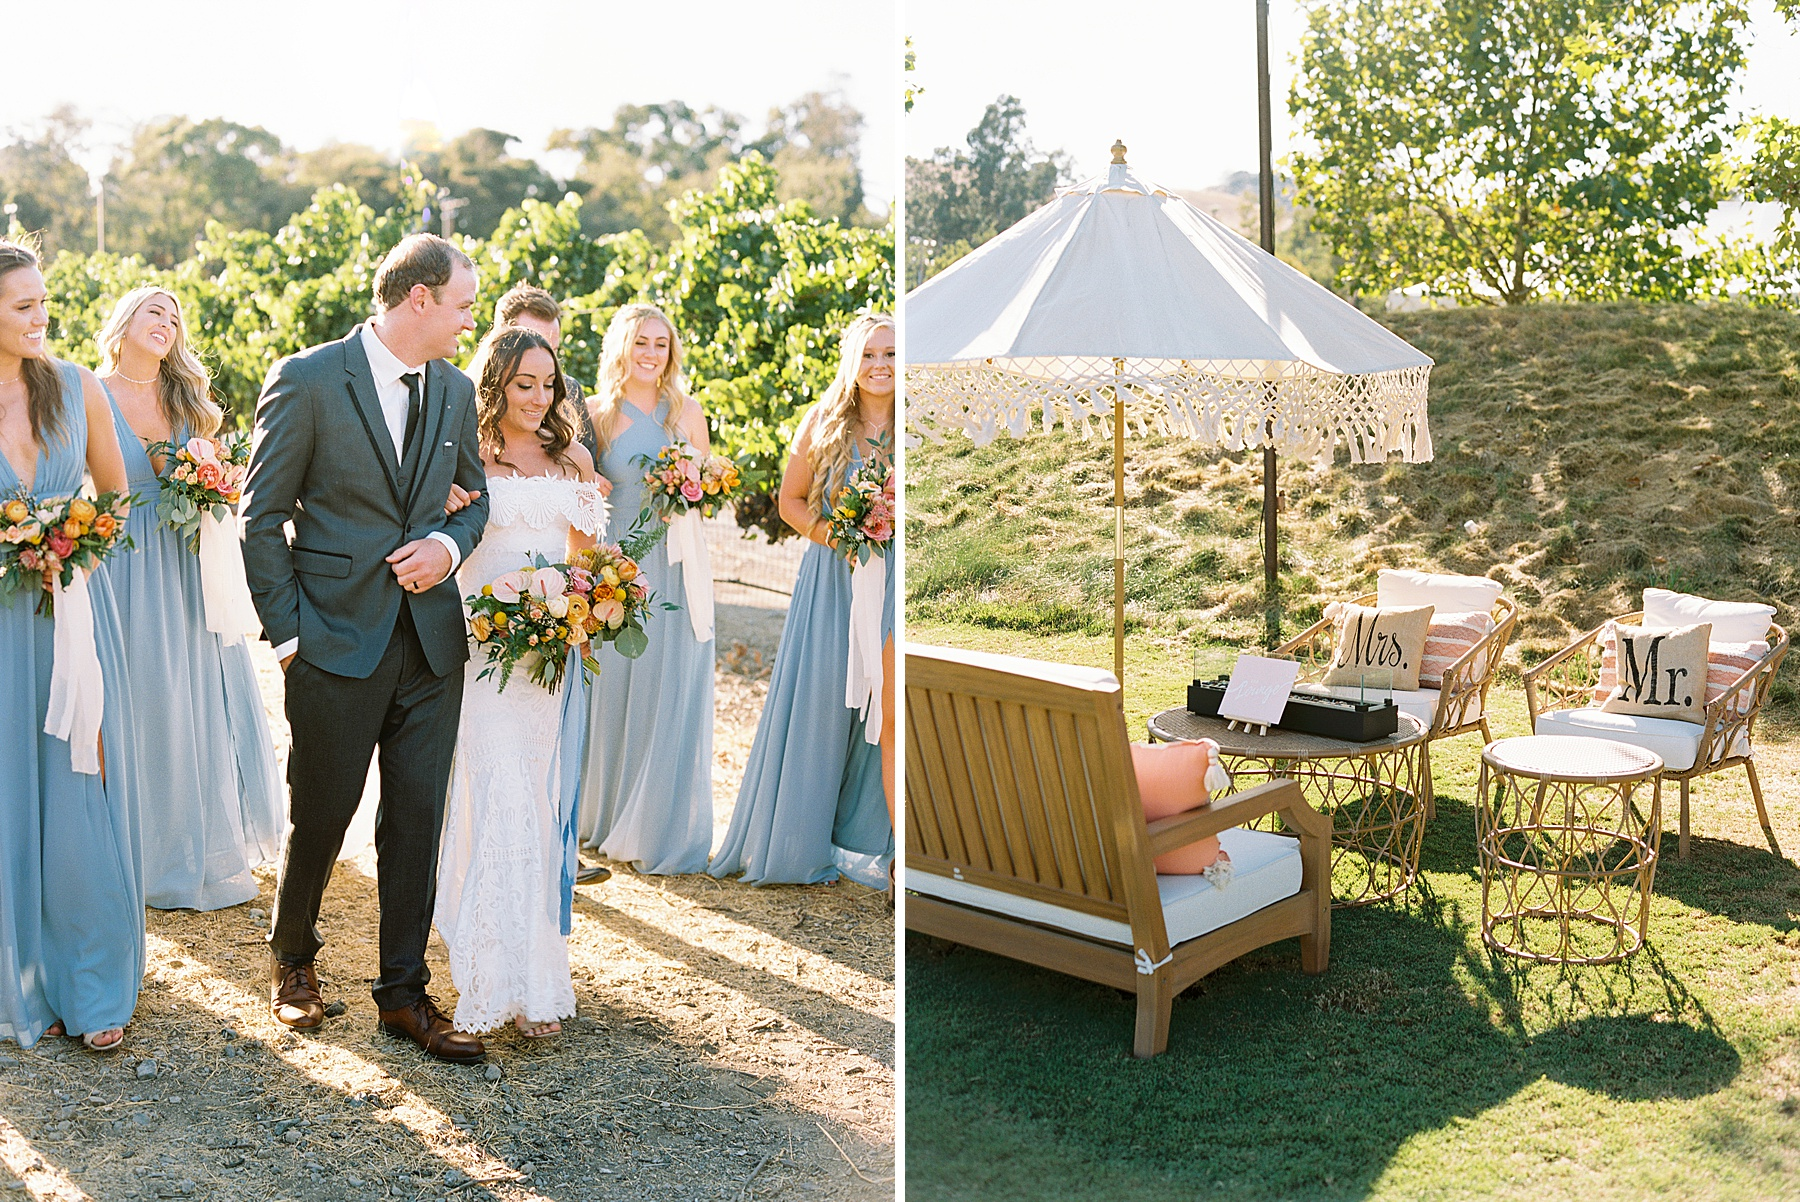 Wente Wedding with A Tropical Color Palette - Ashley & Mike - Featured on Inspired by This - Ashley Baumgartner_0017.jpg